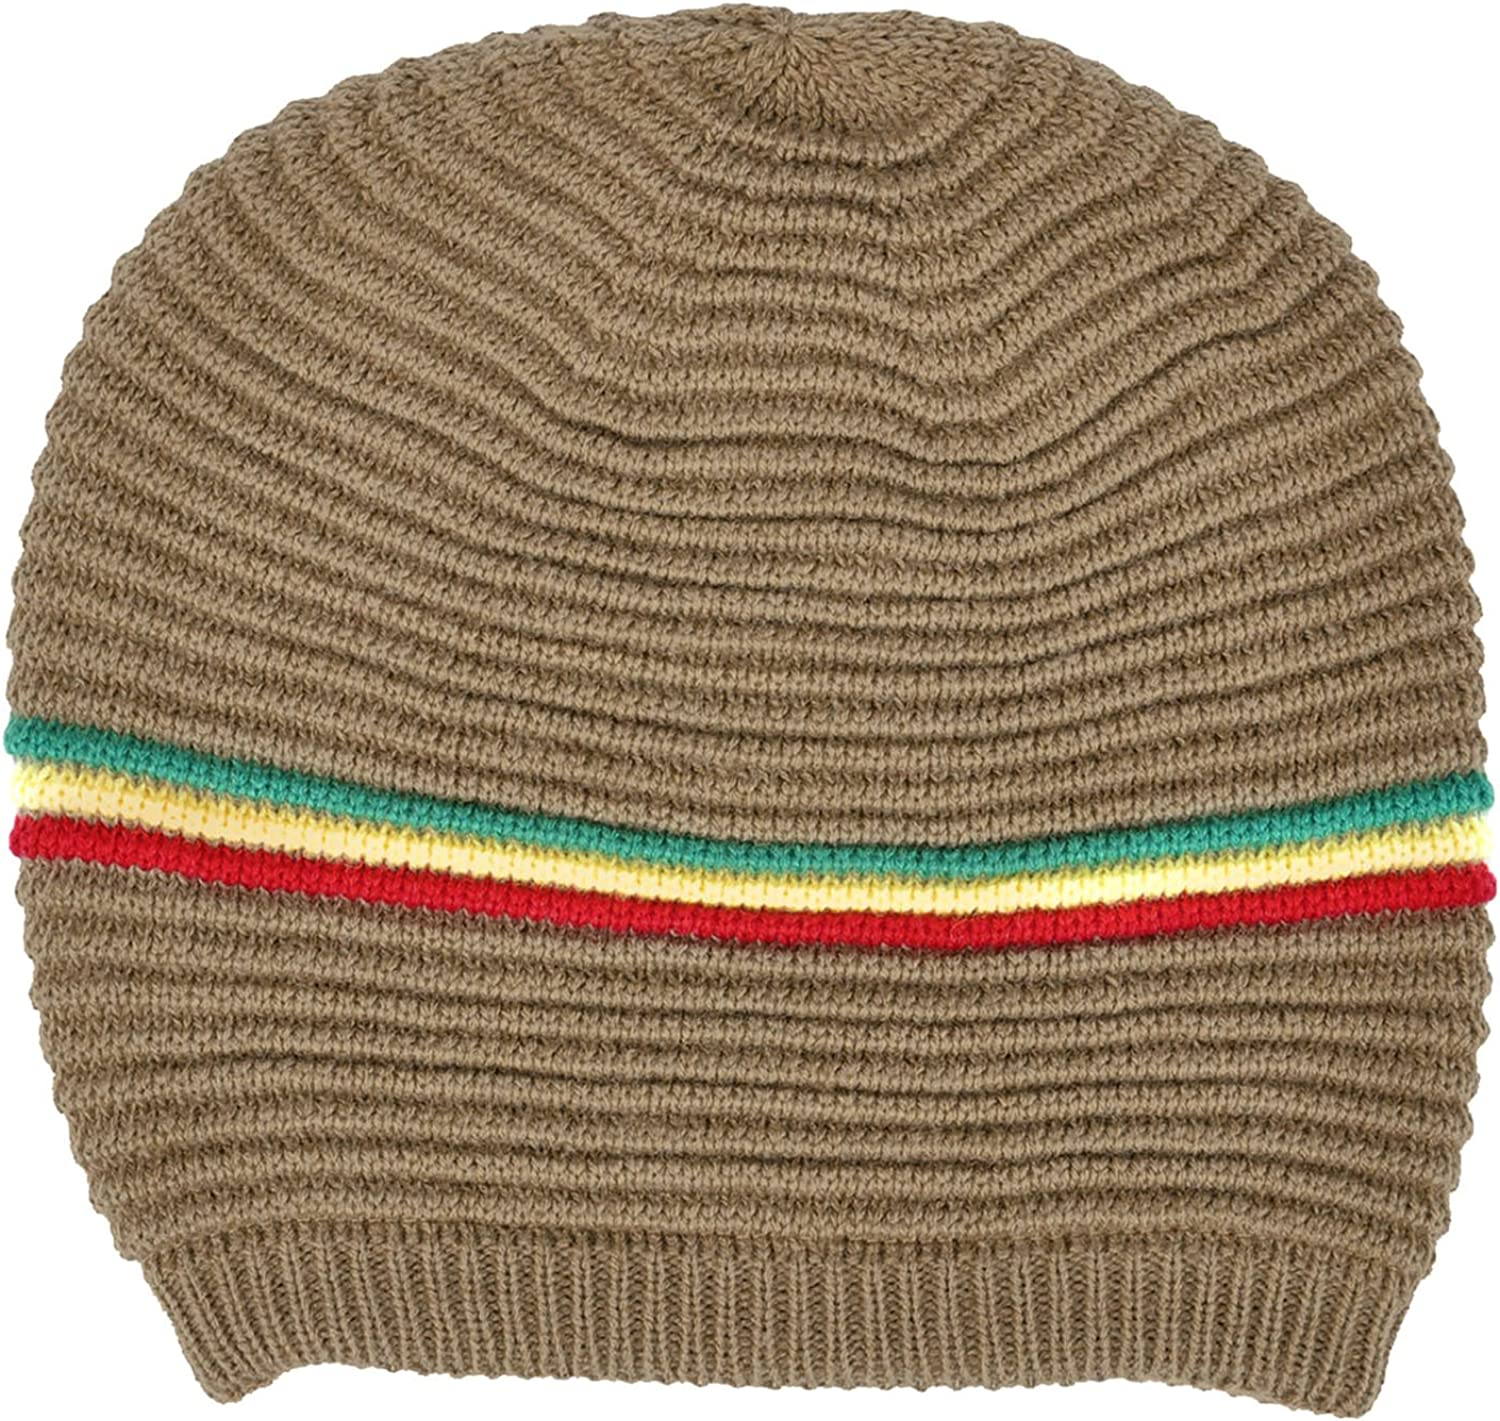 Simplicity Winter Slouchy Limited time for free shipping Knit Beanie Men Hat Outlet sale feature Women for or